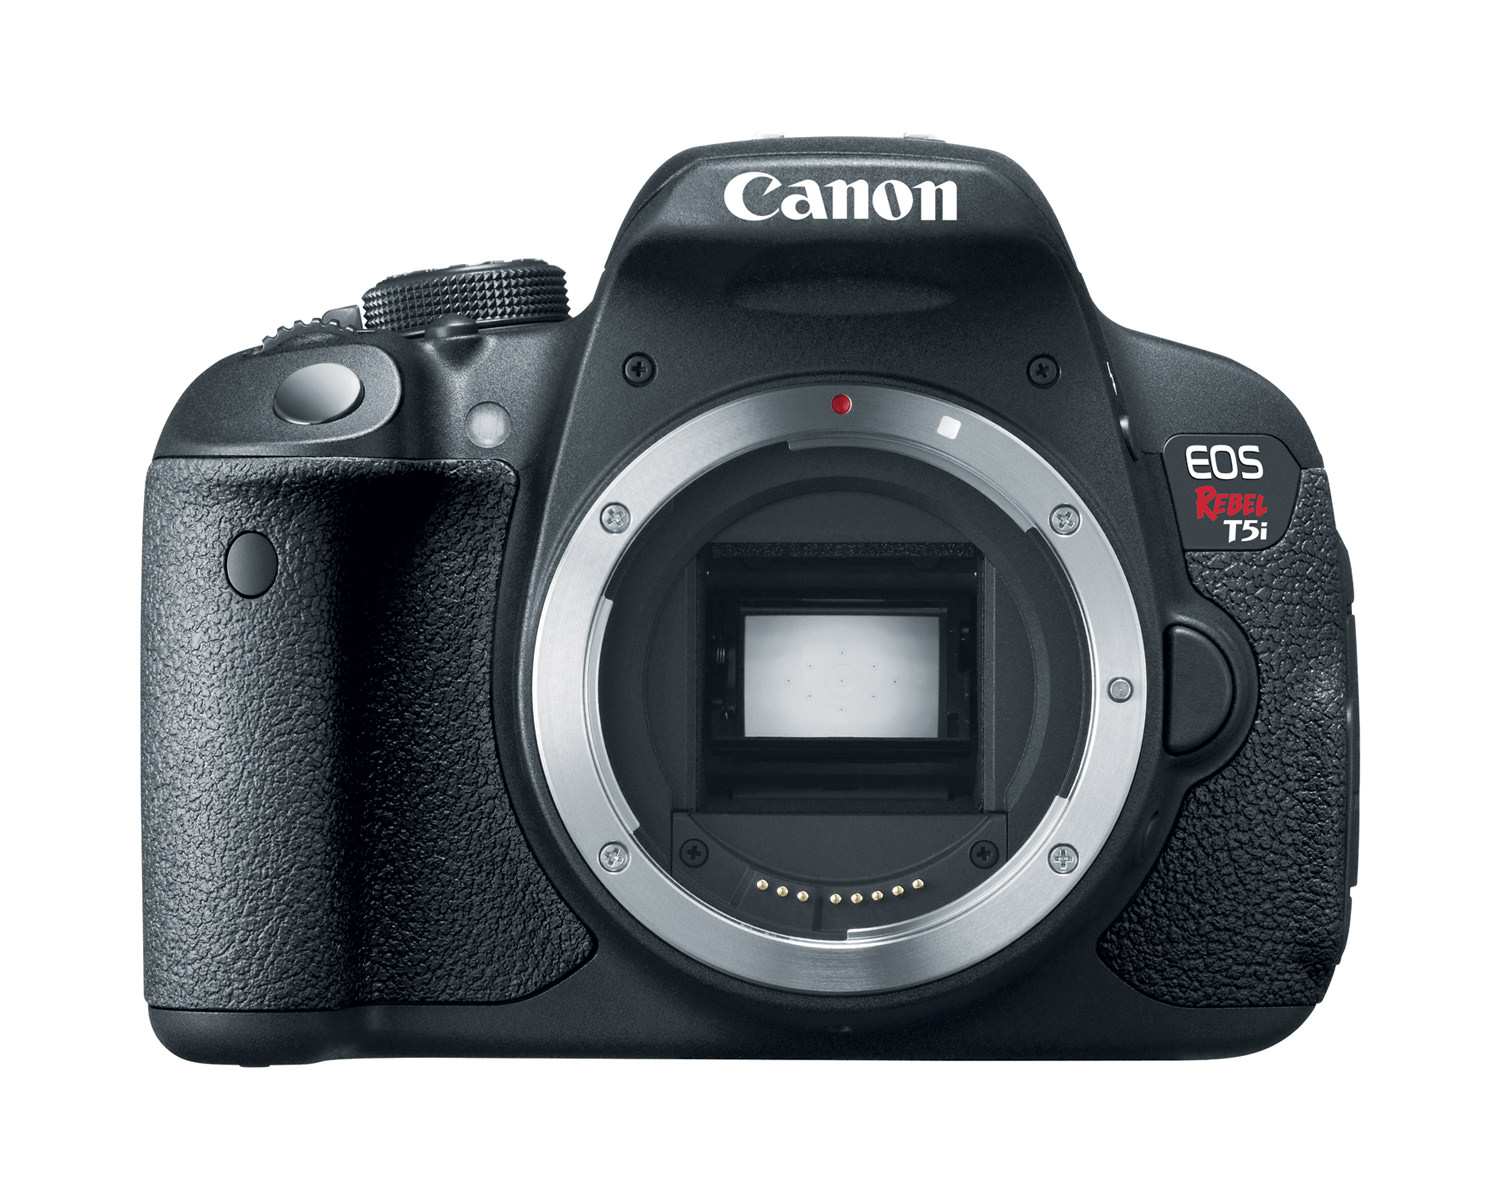 canon eos rebel t5i front hires image